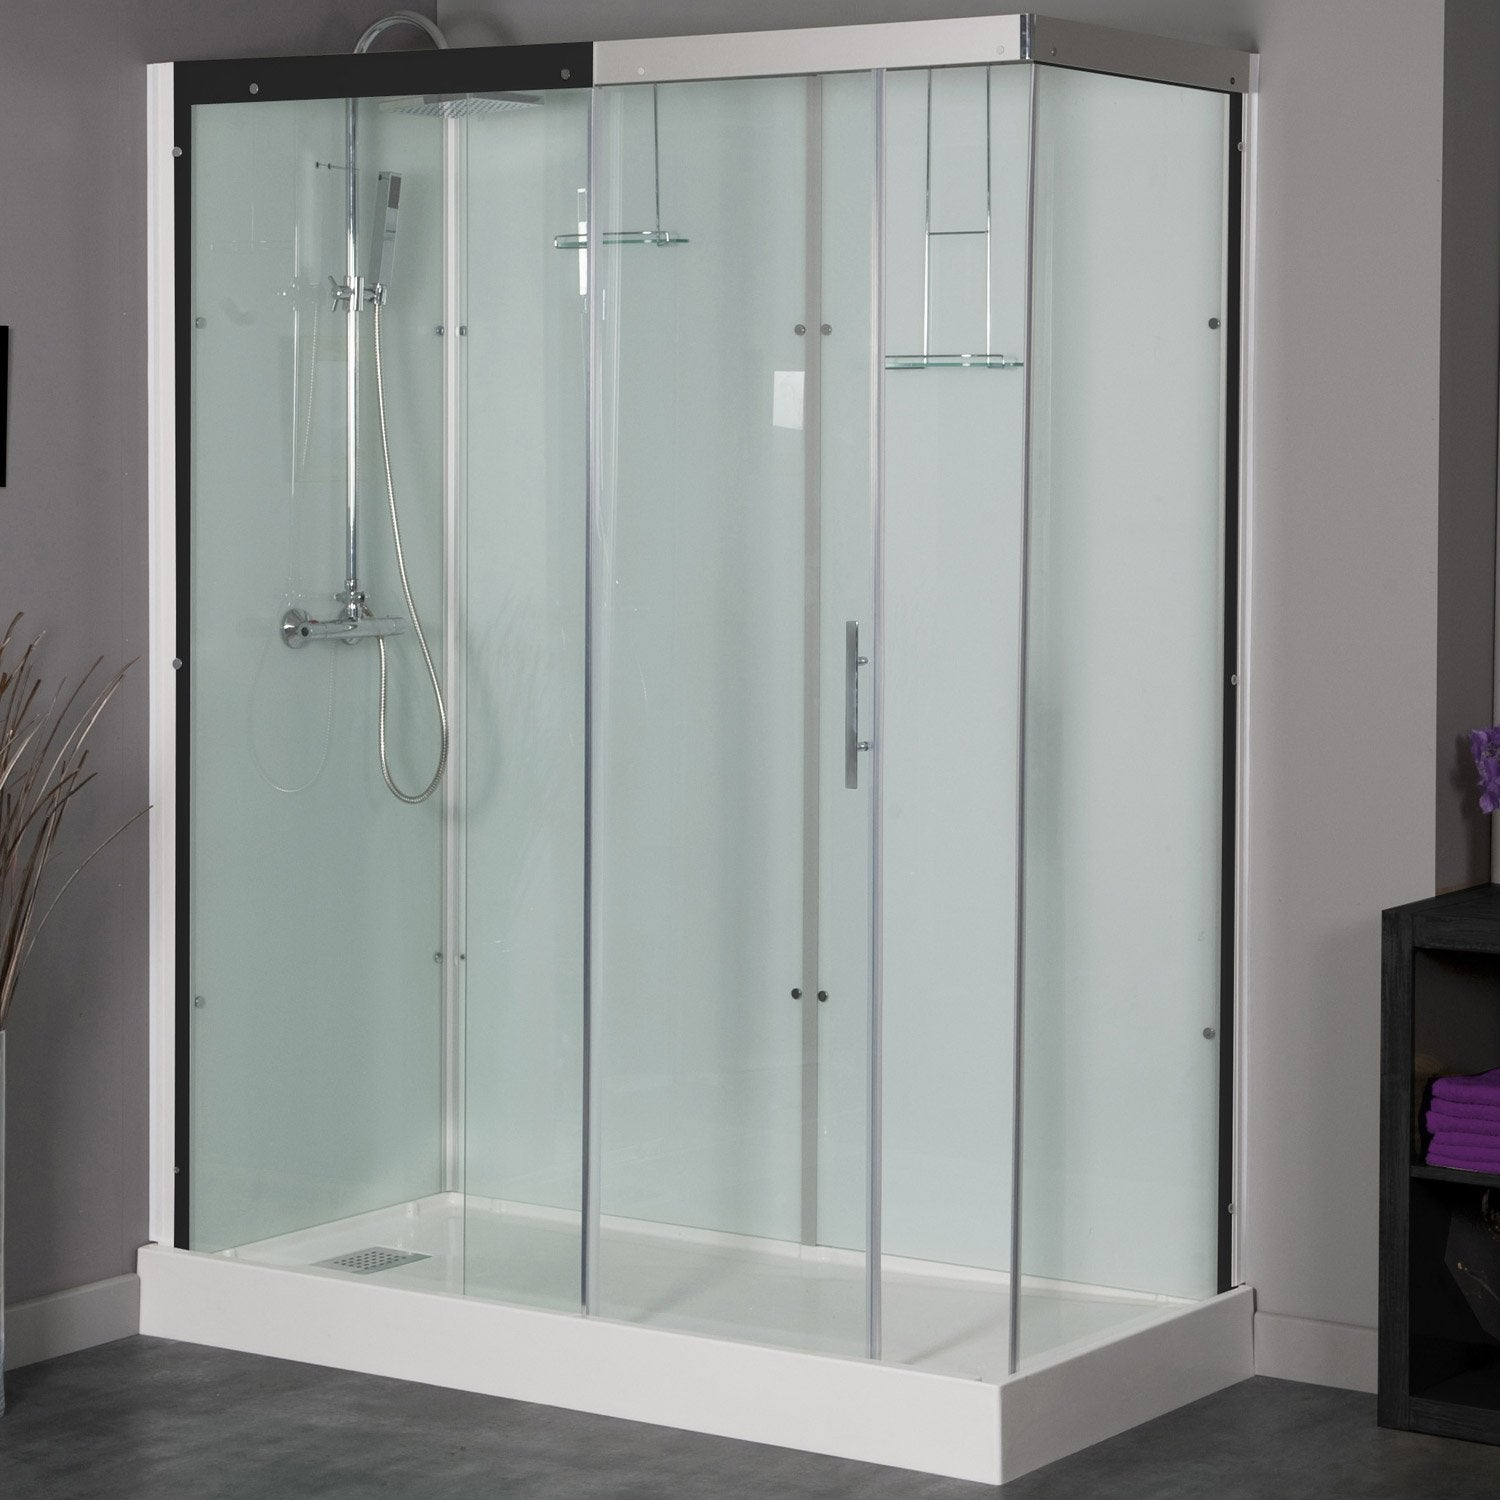 Cabine de douche rectangulaire 120x90 cm, Thalaglass 2 thermo ...